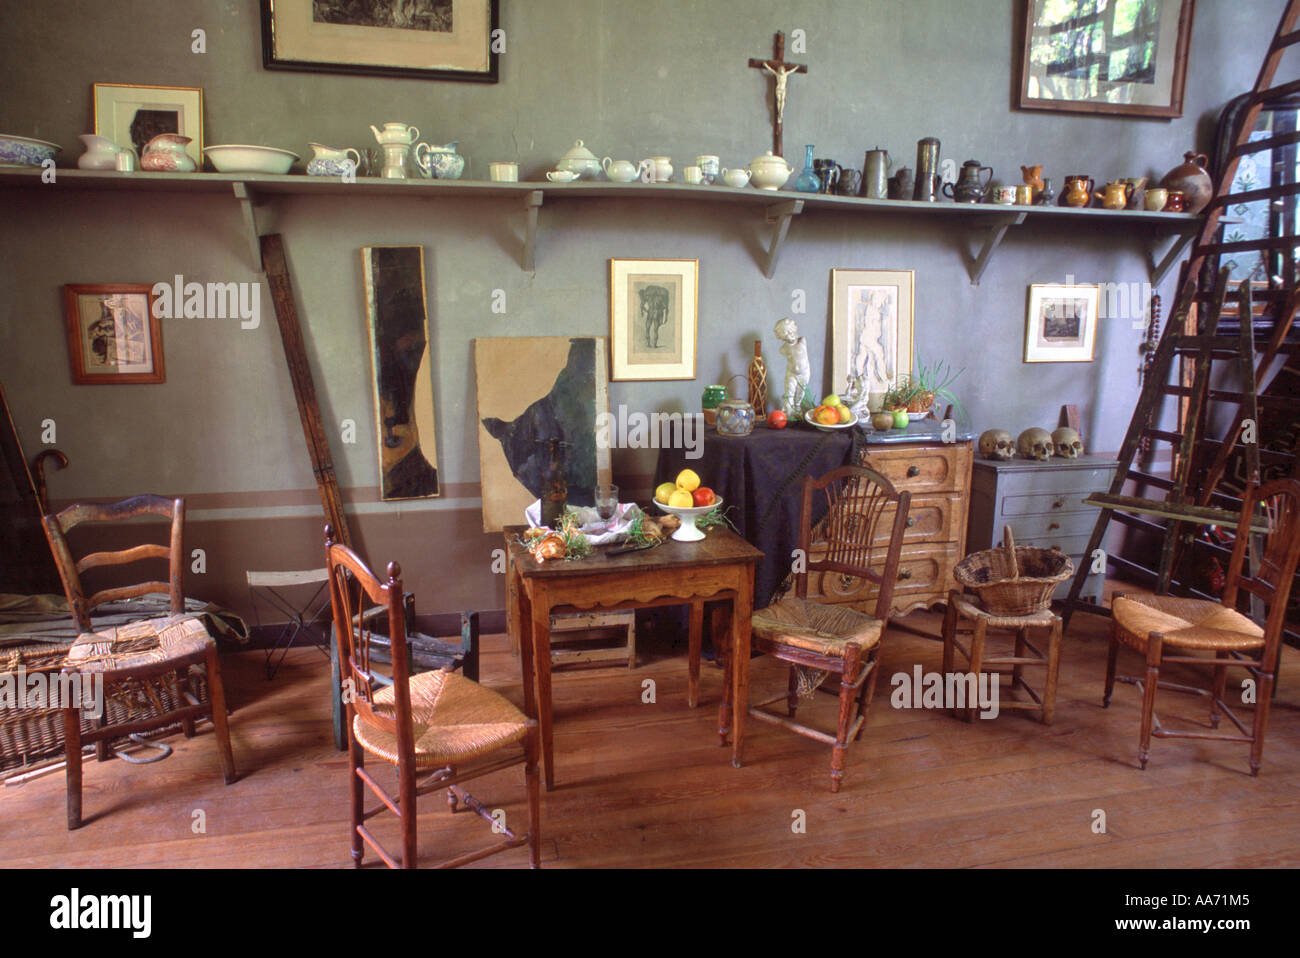 france aix en provence cezanne 39 s workroom at the atelier cezanne with stock photo royalty free. Black Bedroom Furniture Sets. Home Design Ideas